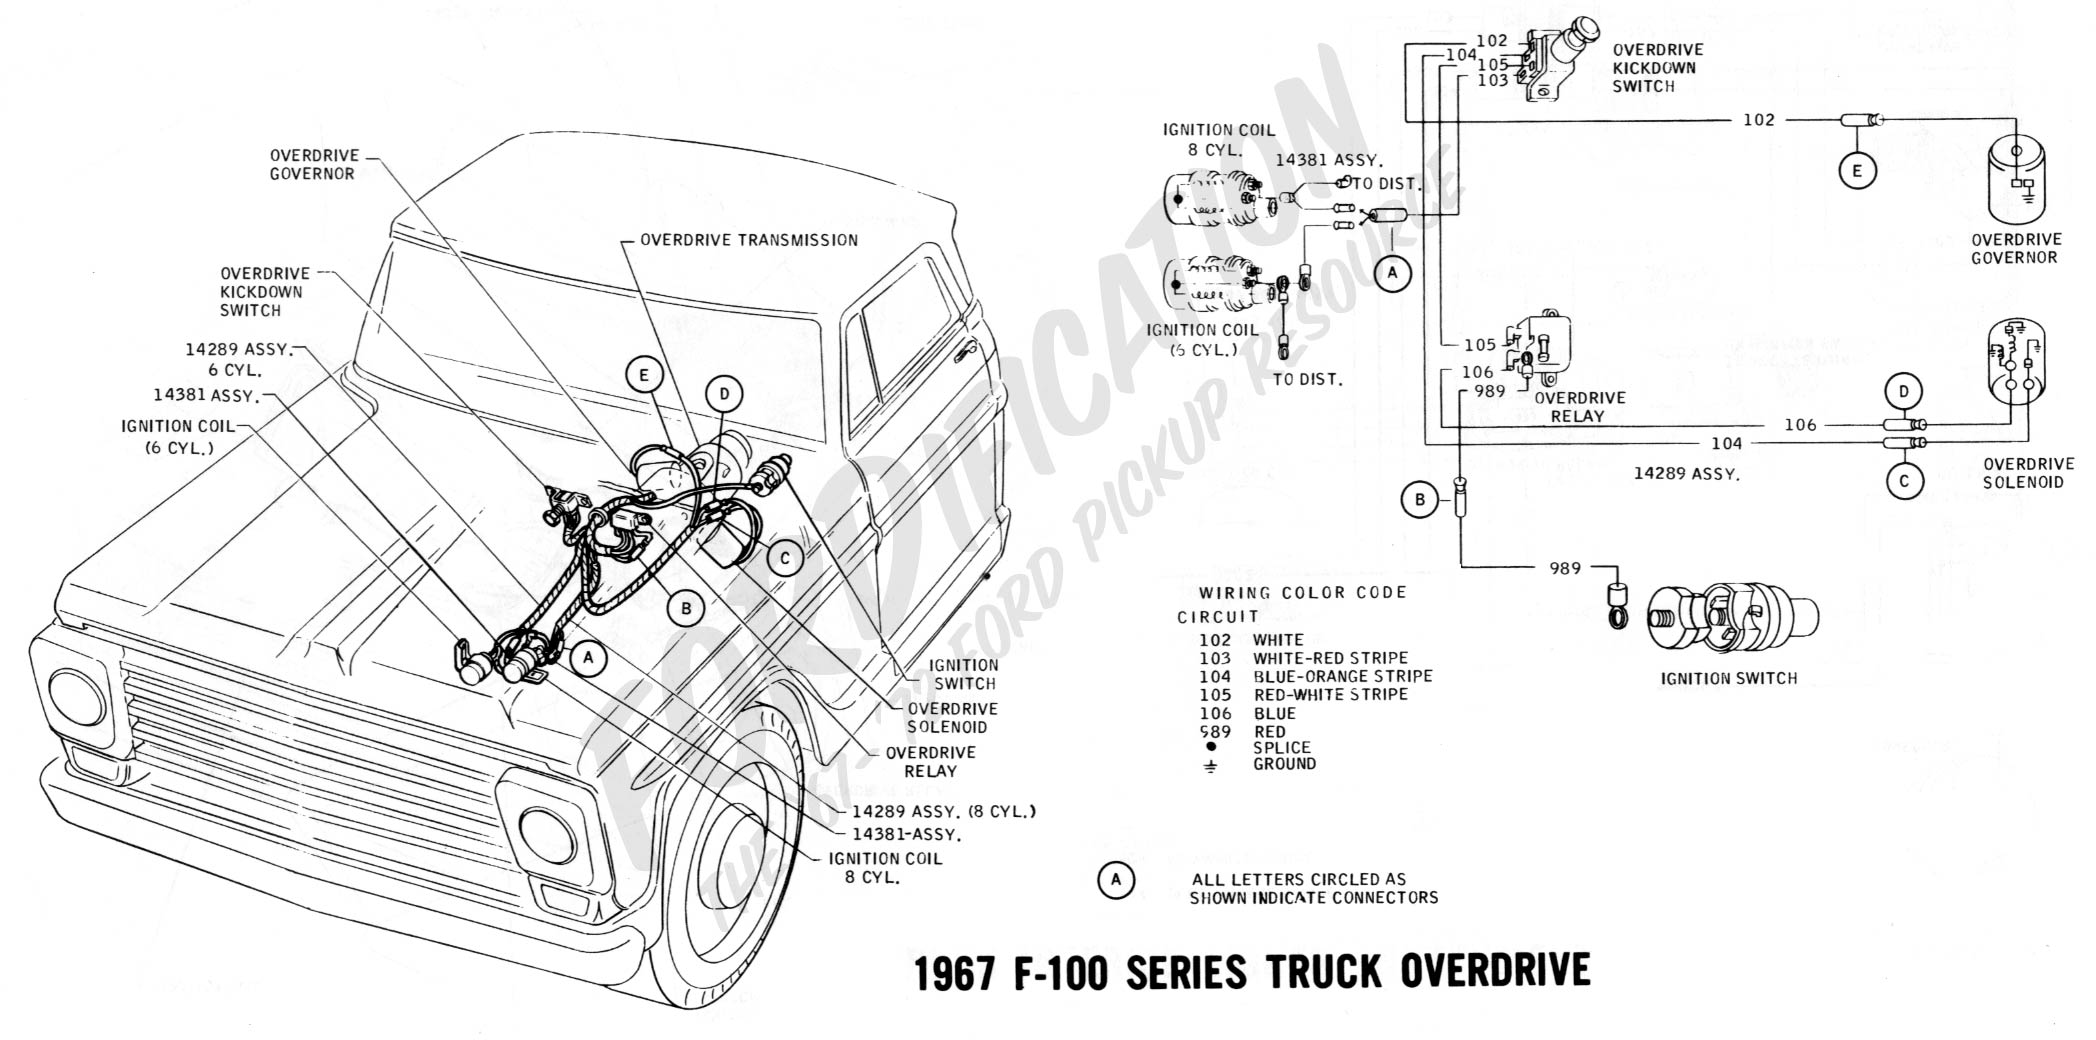 72 Ford Steering Column Wiring Diagram - Wiring Diagram •